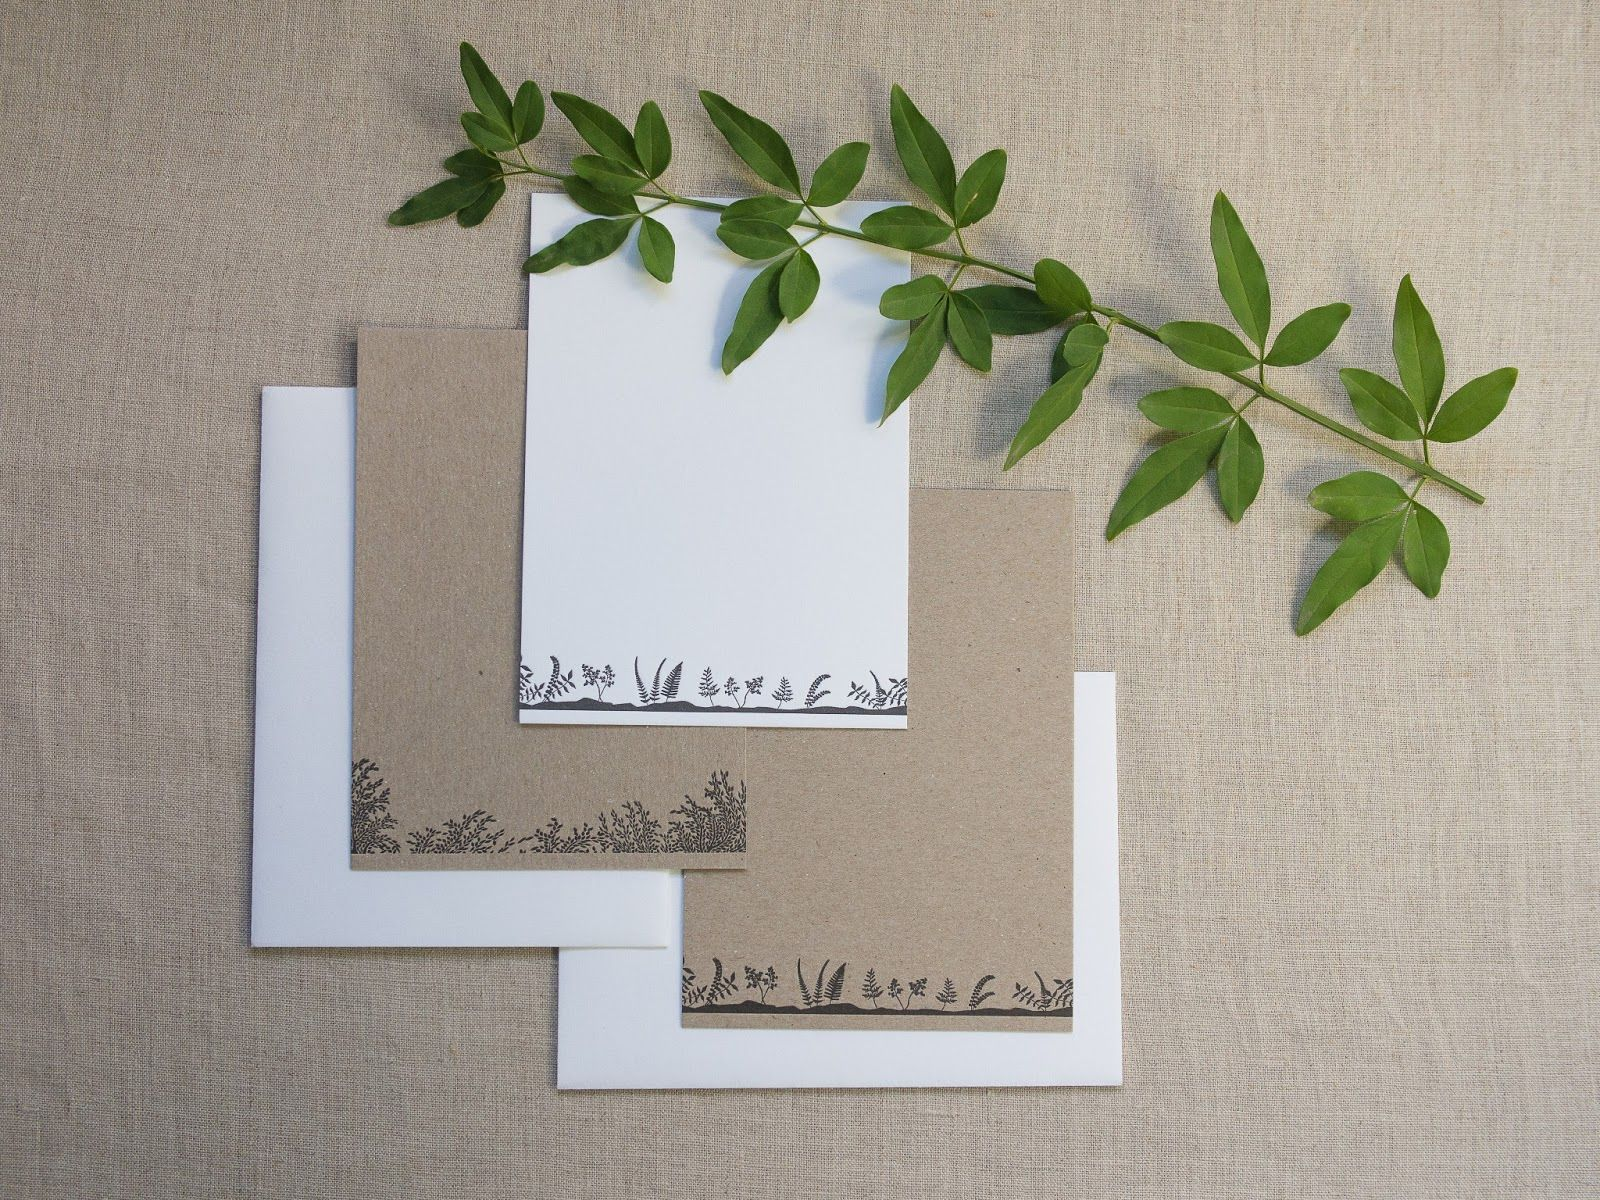 Simple, Organic Stationary with little fern accents on kraft and white paper Letterpress wedding invitation for a foodie couple | Underwood Letterpress | http://www.underwoodletterpress.com